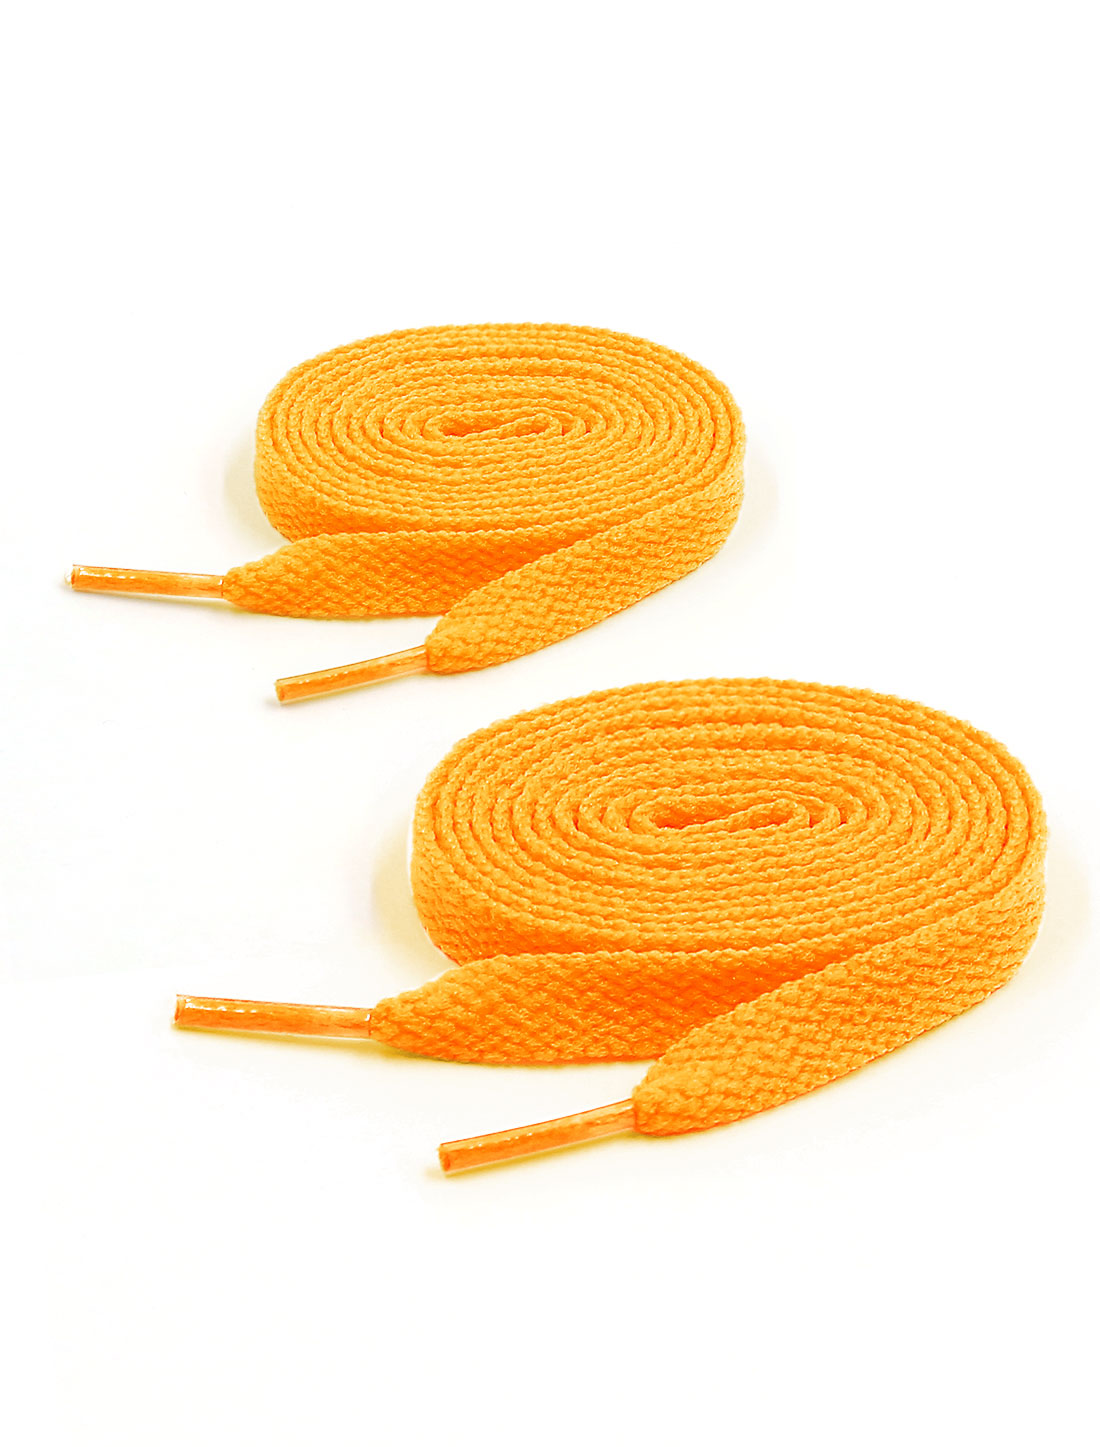 Unisex 123cm Length Sneakers Boots Hiking Athletic Shoelaces 2 Pairs Yellow